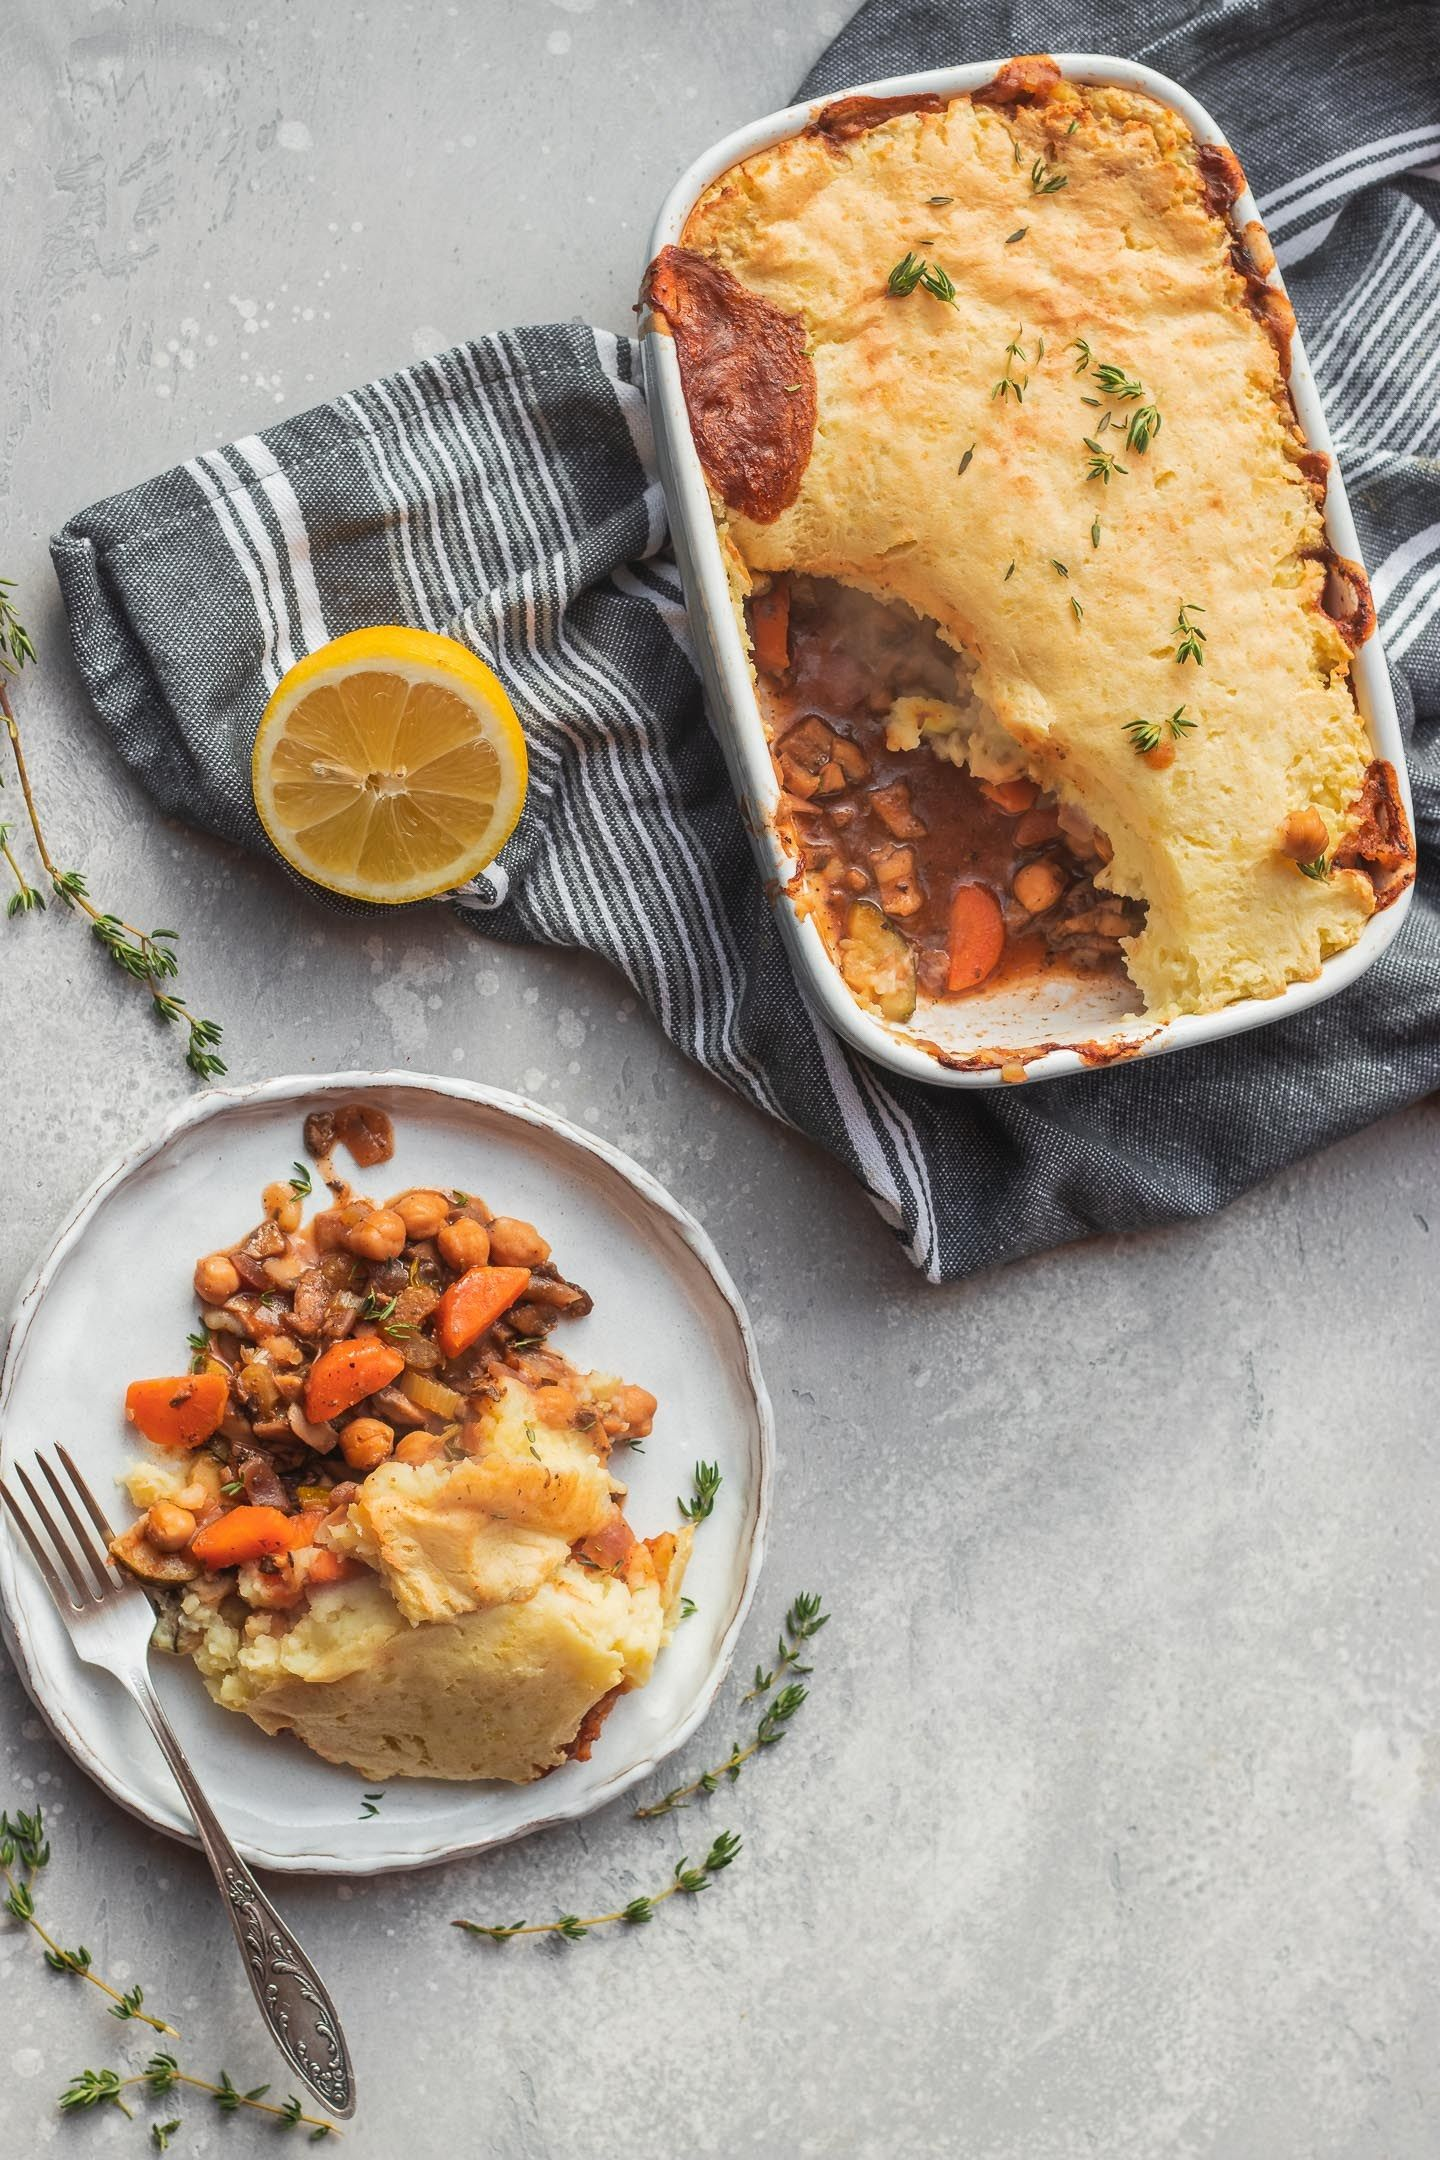 Chickpea Vegan Shepherds Pie Gluten Free